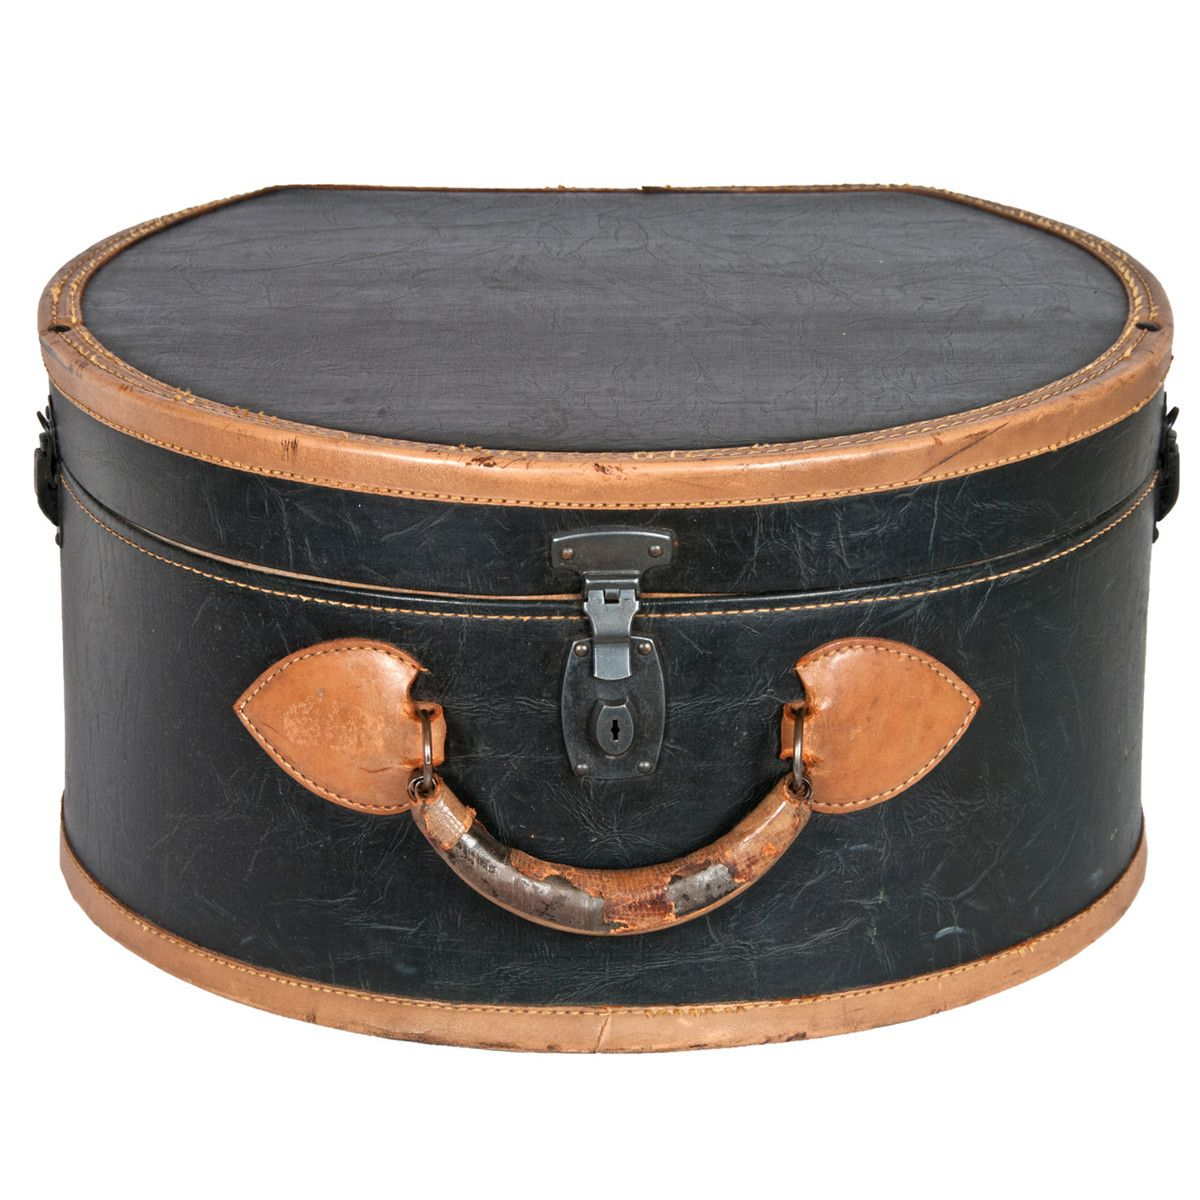 Leather Hatbox Suitcase Leather Hat Boxes Unusual Handbags